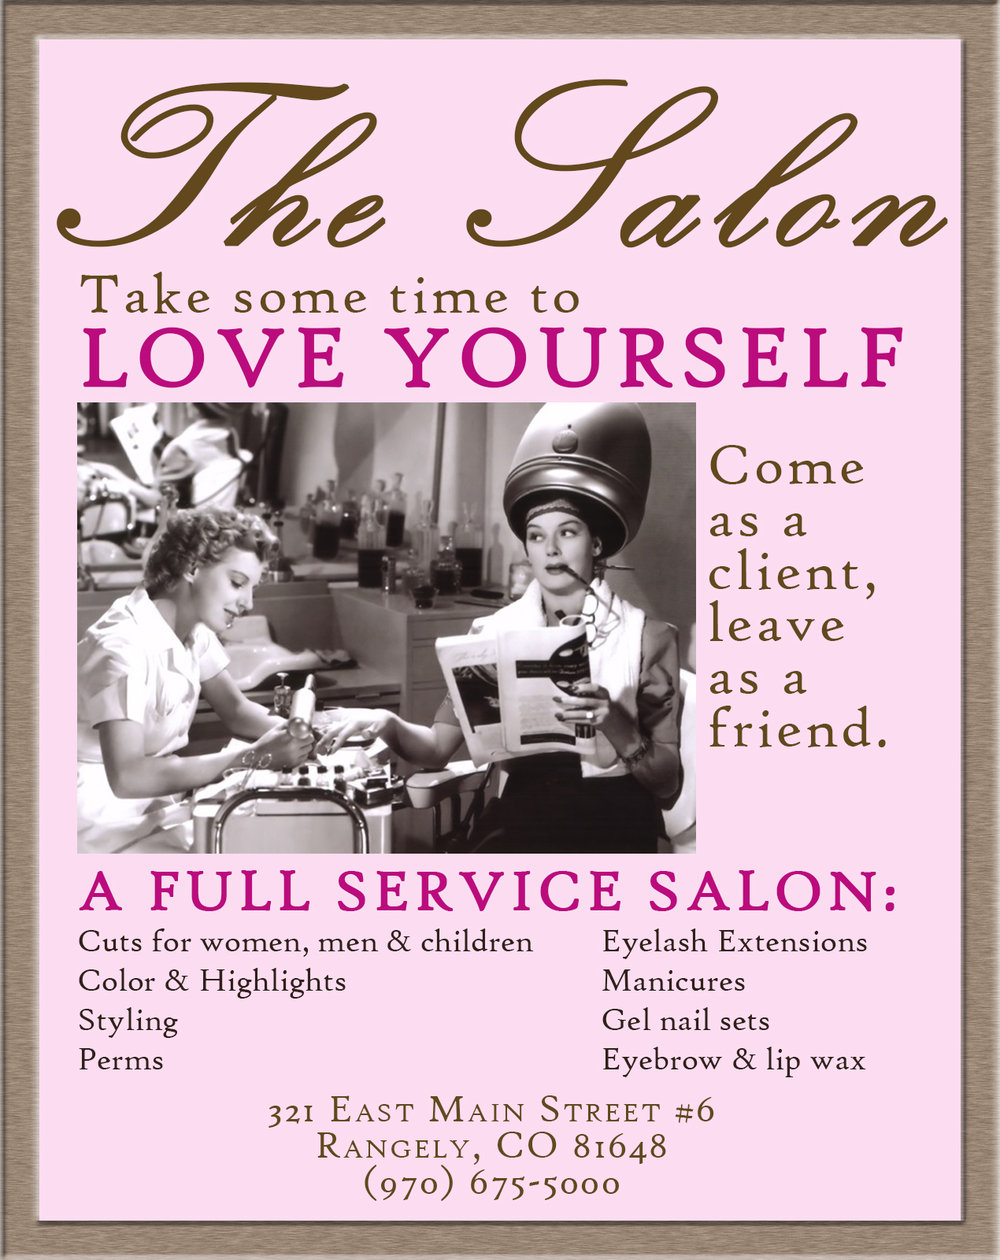 No valentine? No problem! Love yourself and go to the Salon and get some TLC from some amazing ladies at The Salon.